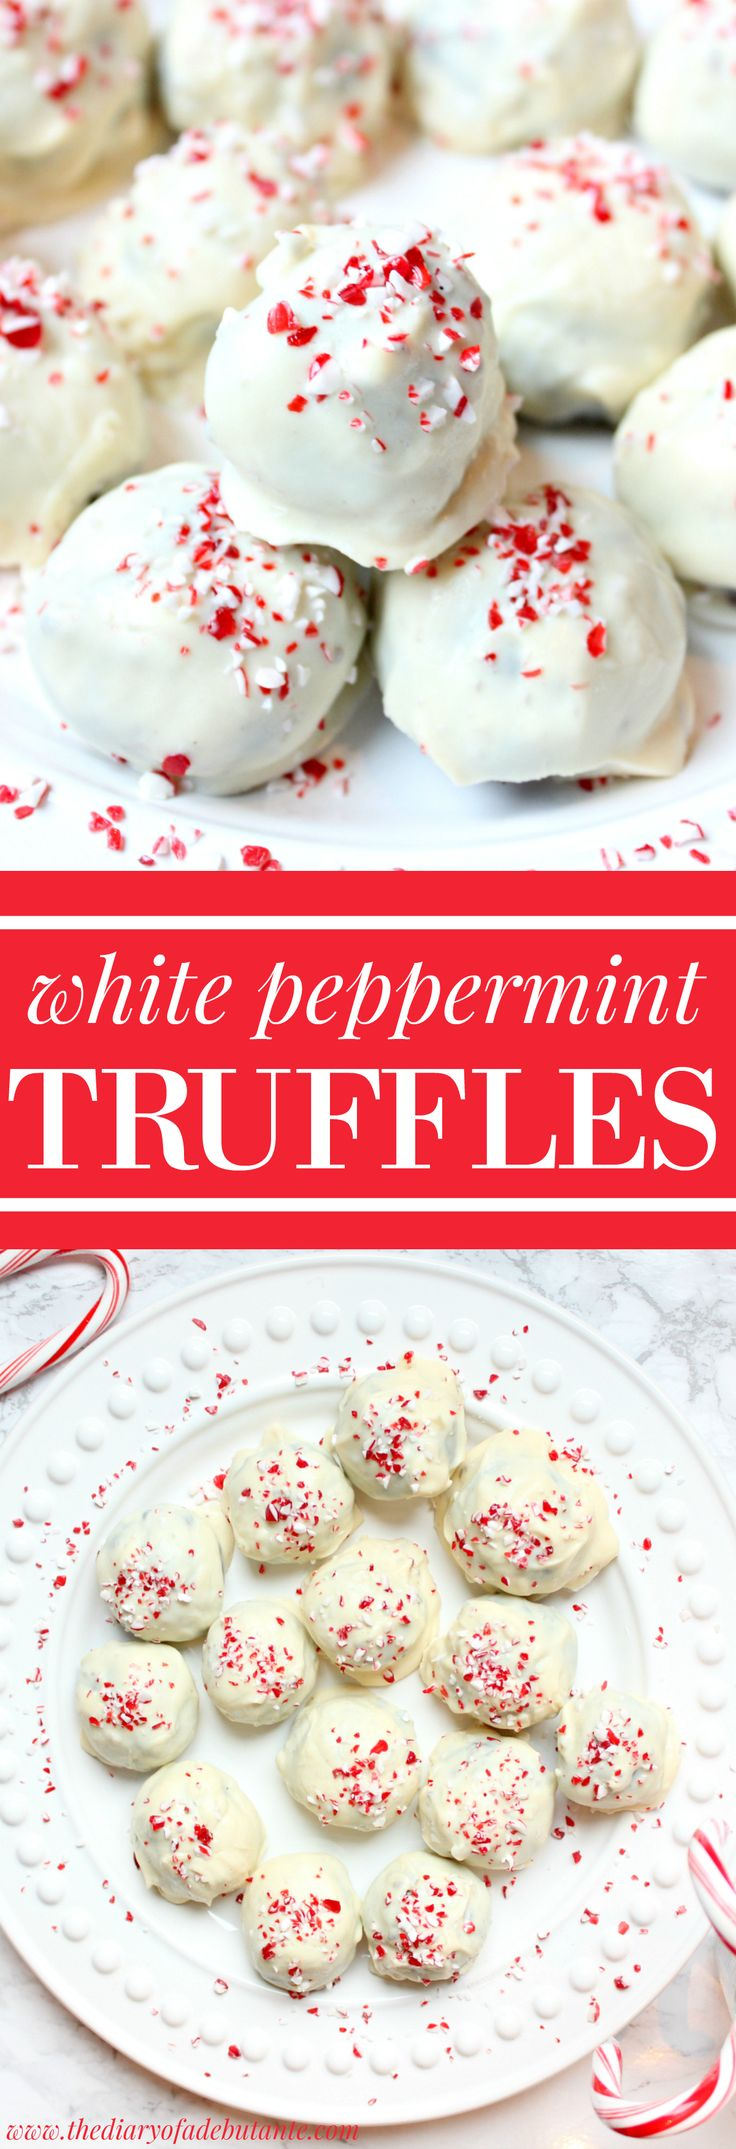 These mouth-watering, no-bake White Peppermint Oreo Truffles are a deliciously easy holiday dessert or snack that anyone (literally anyone) can make! You can follow this recipe using either white or milk chocolate, although I prefer using vanilla almond bark bars. So yummy!